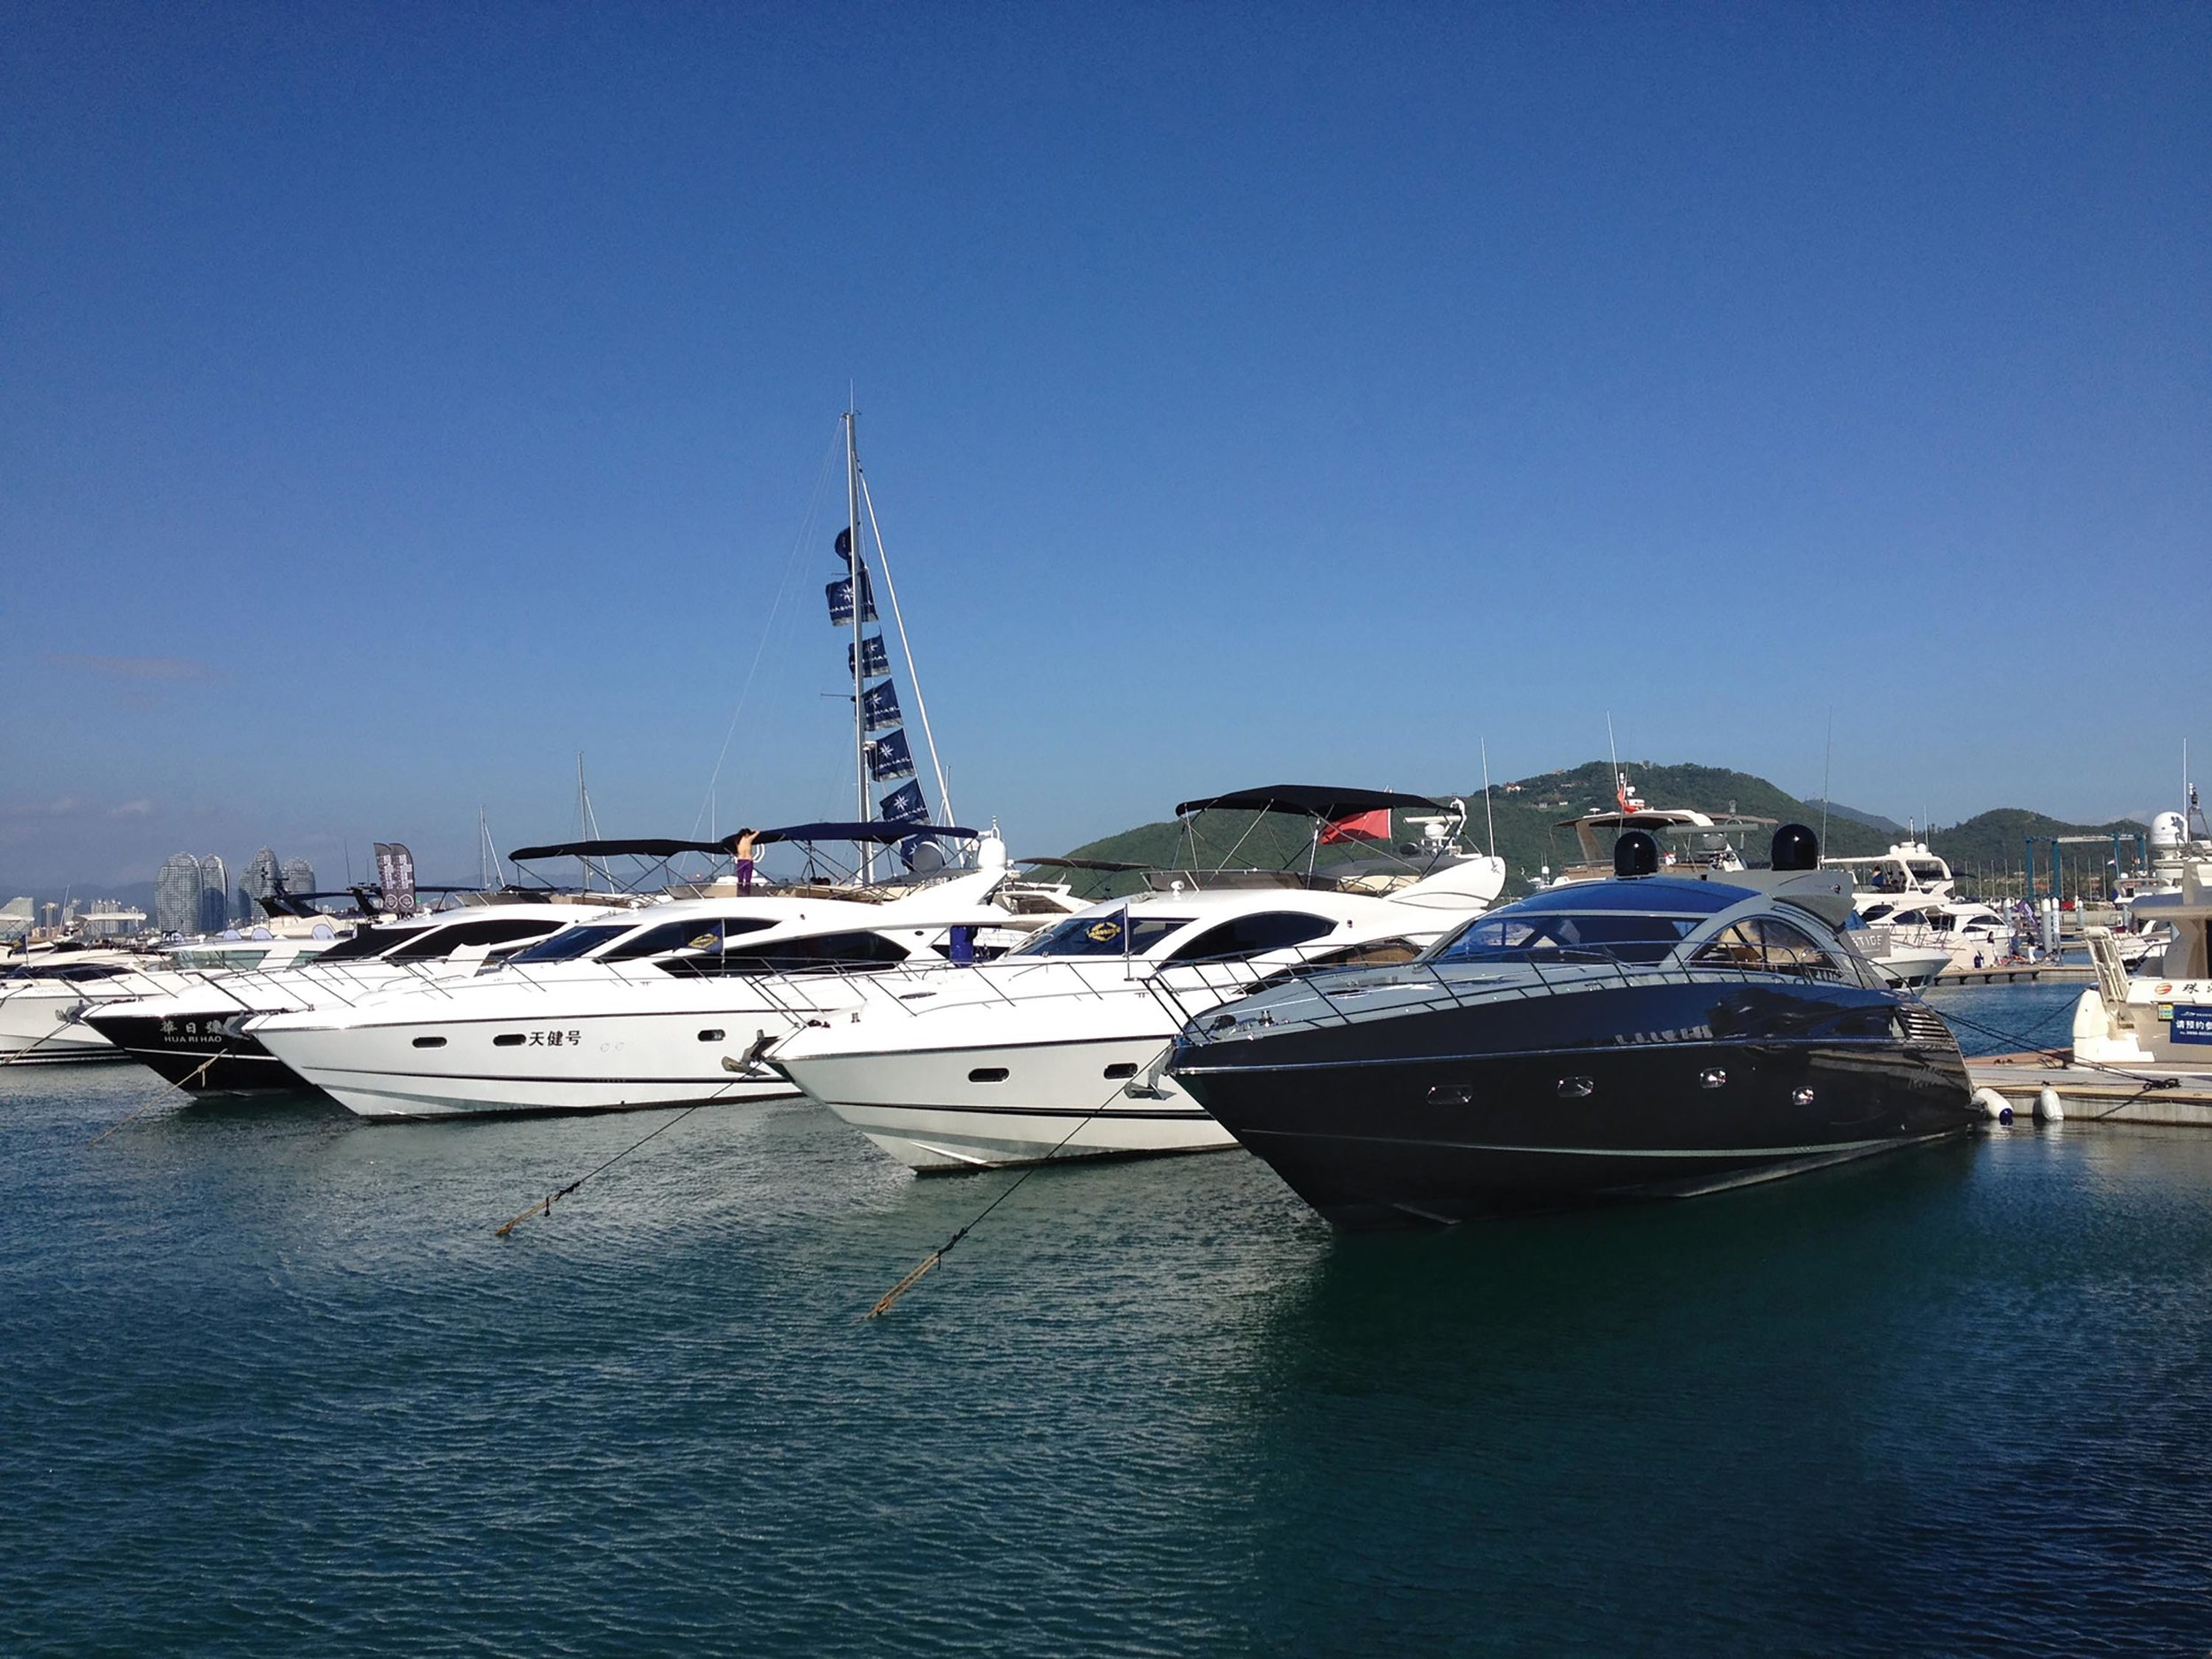 A variety of Sunseekers at the 2012 Hainan Boat Show in Sanya